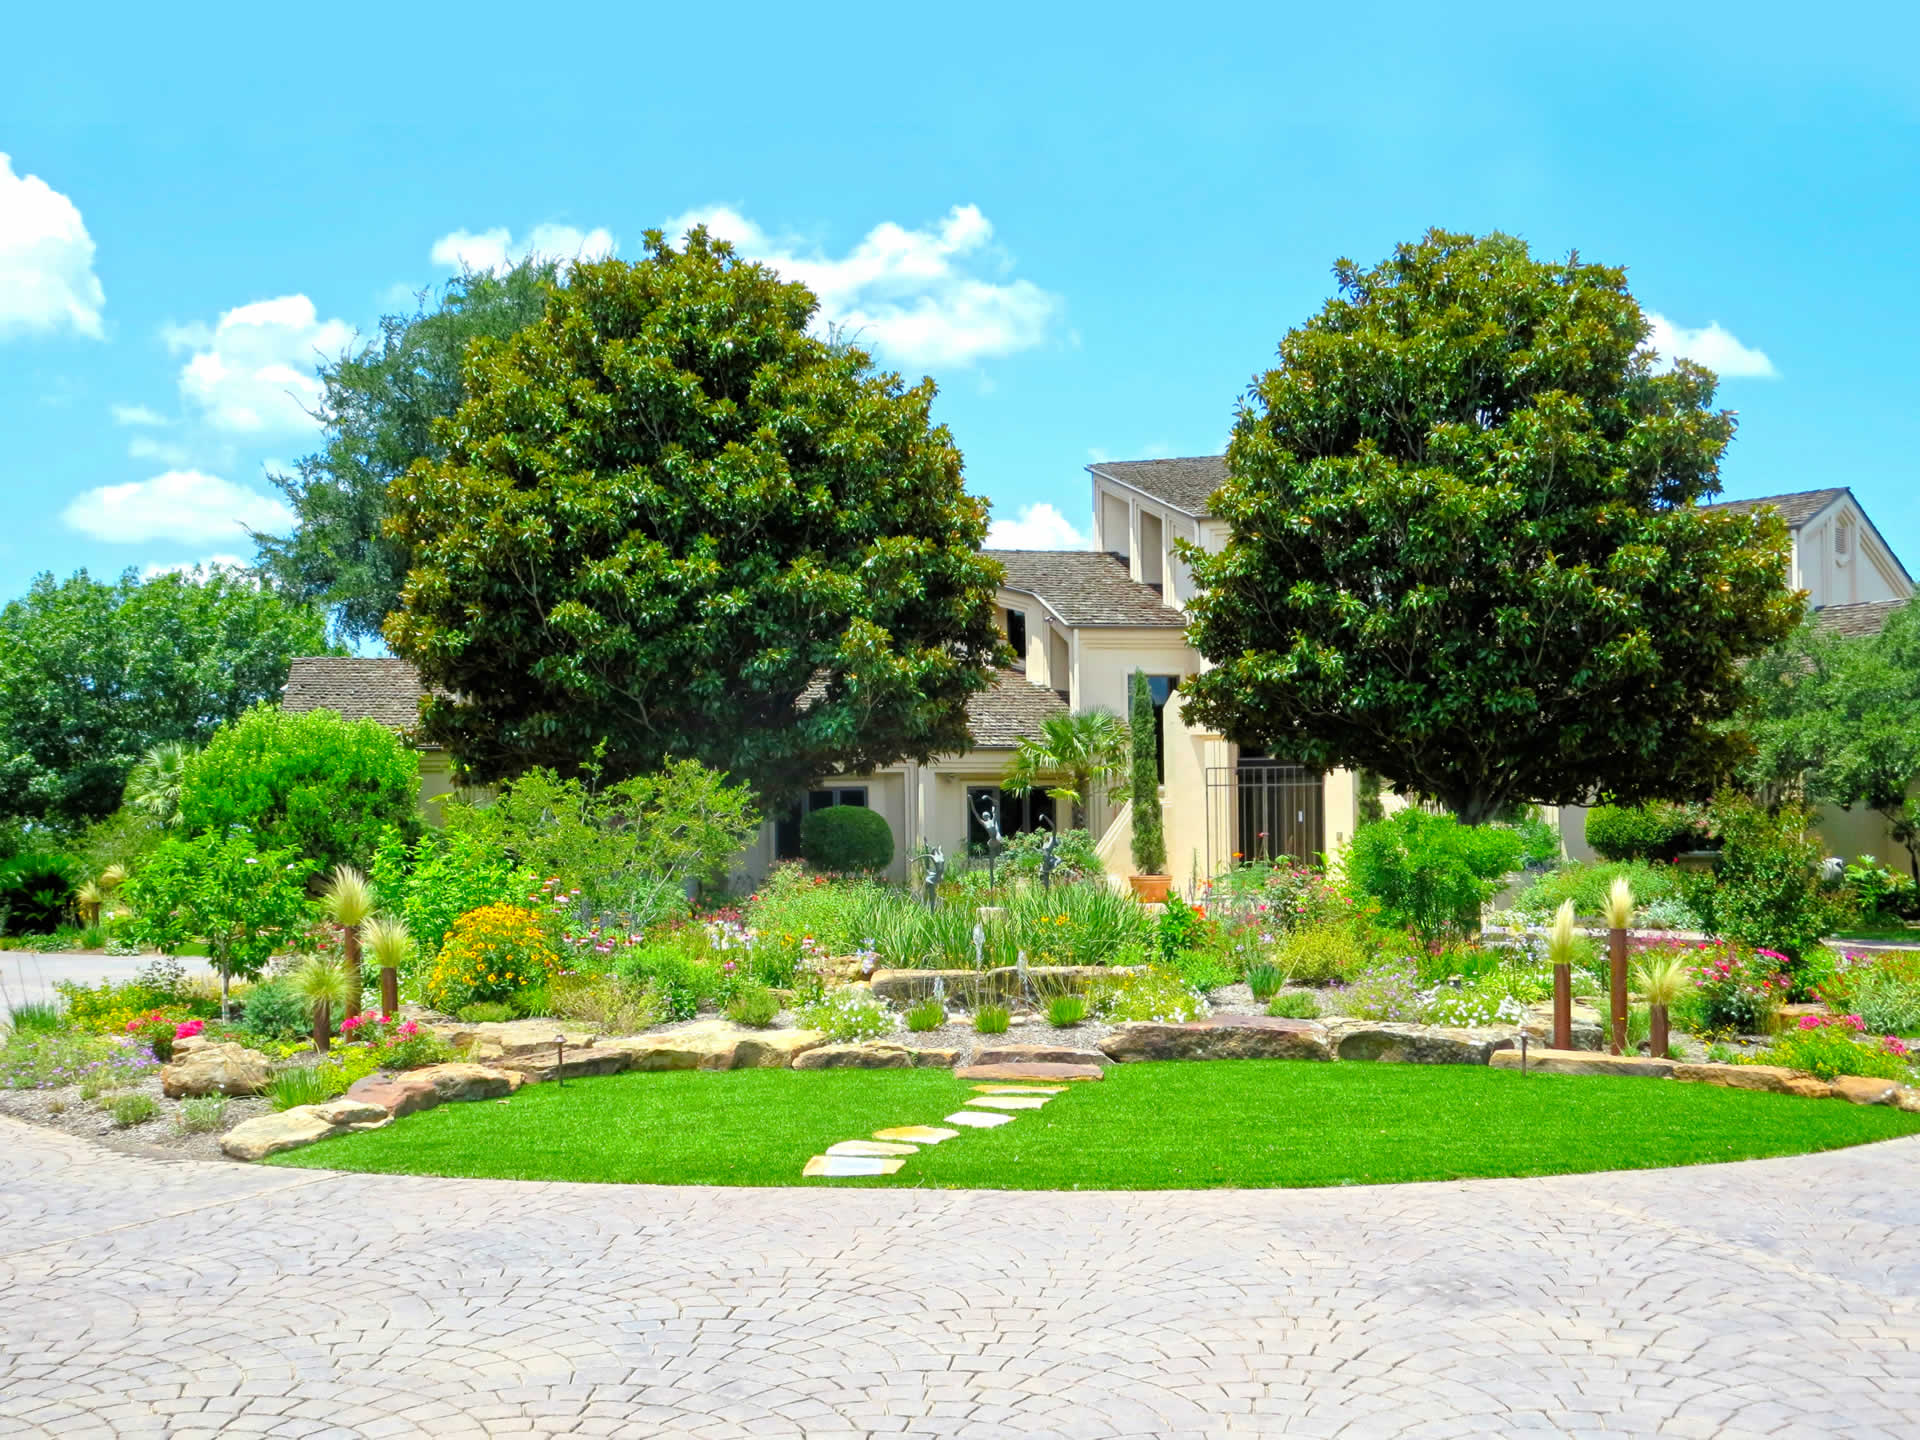 Landscaping Services In Austin Tx Kevin Wood Landscapes